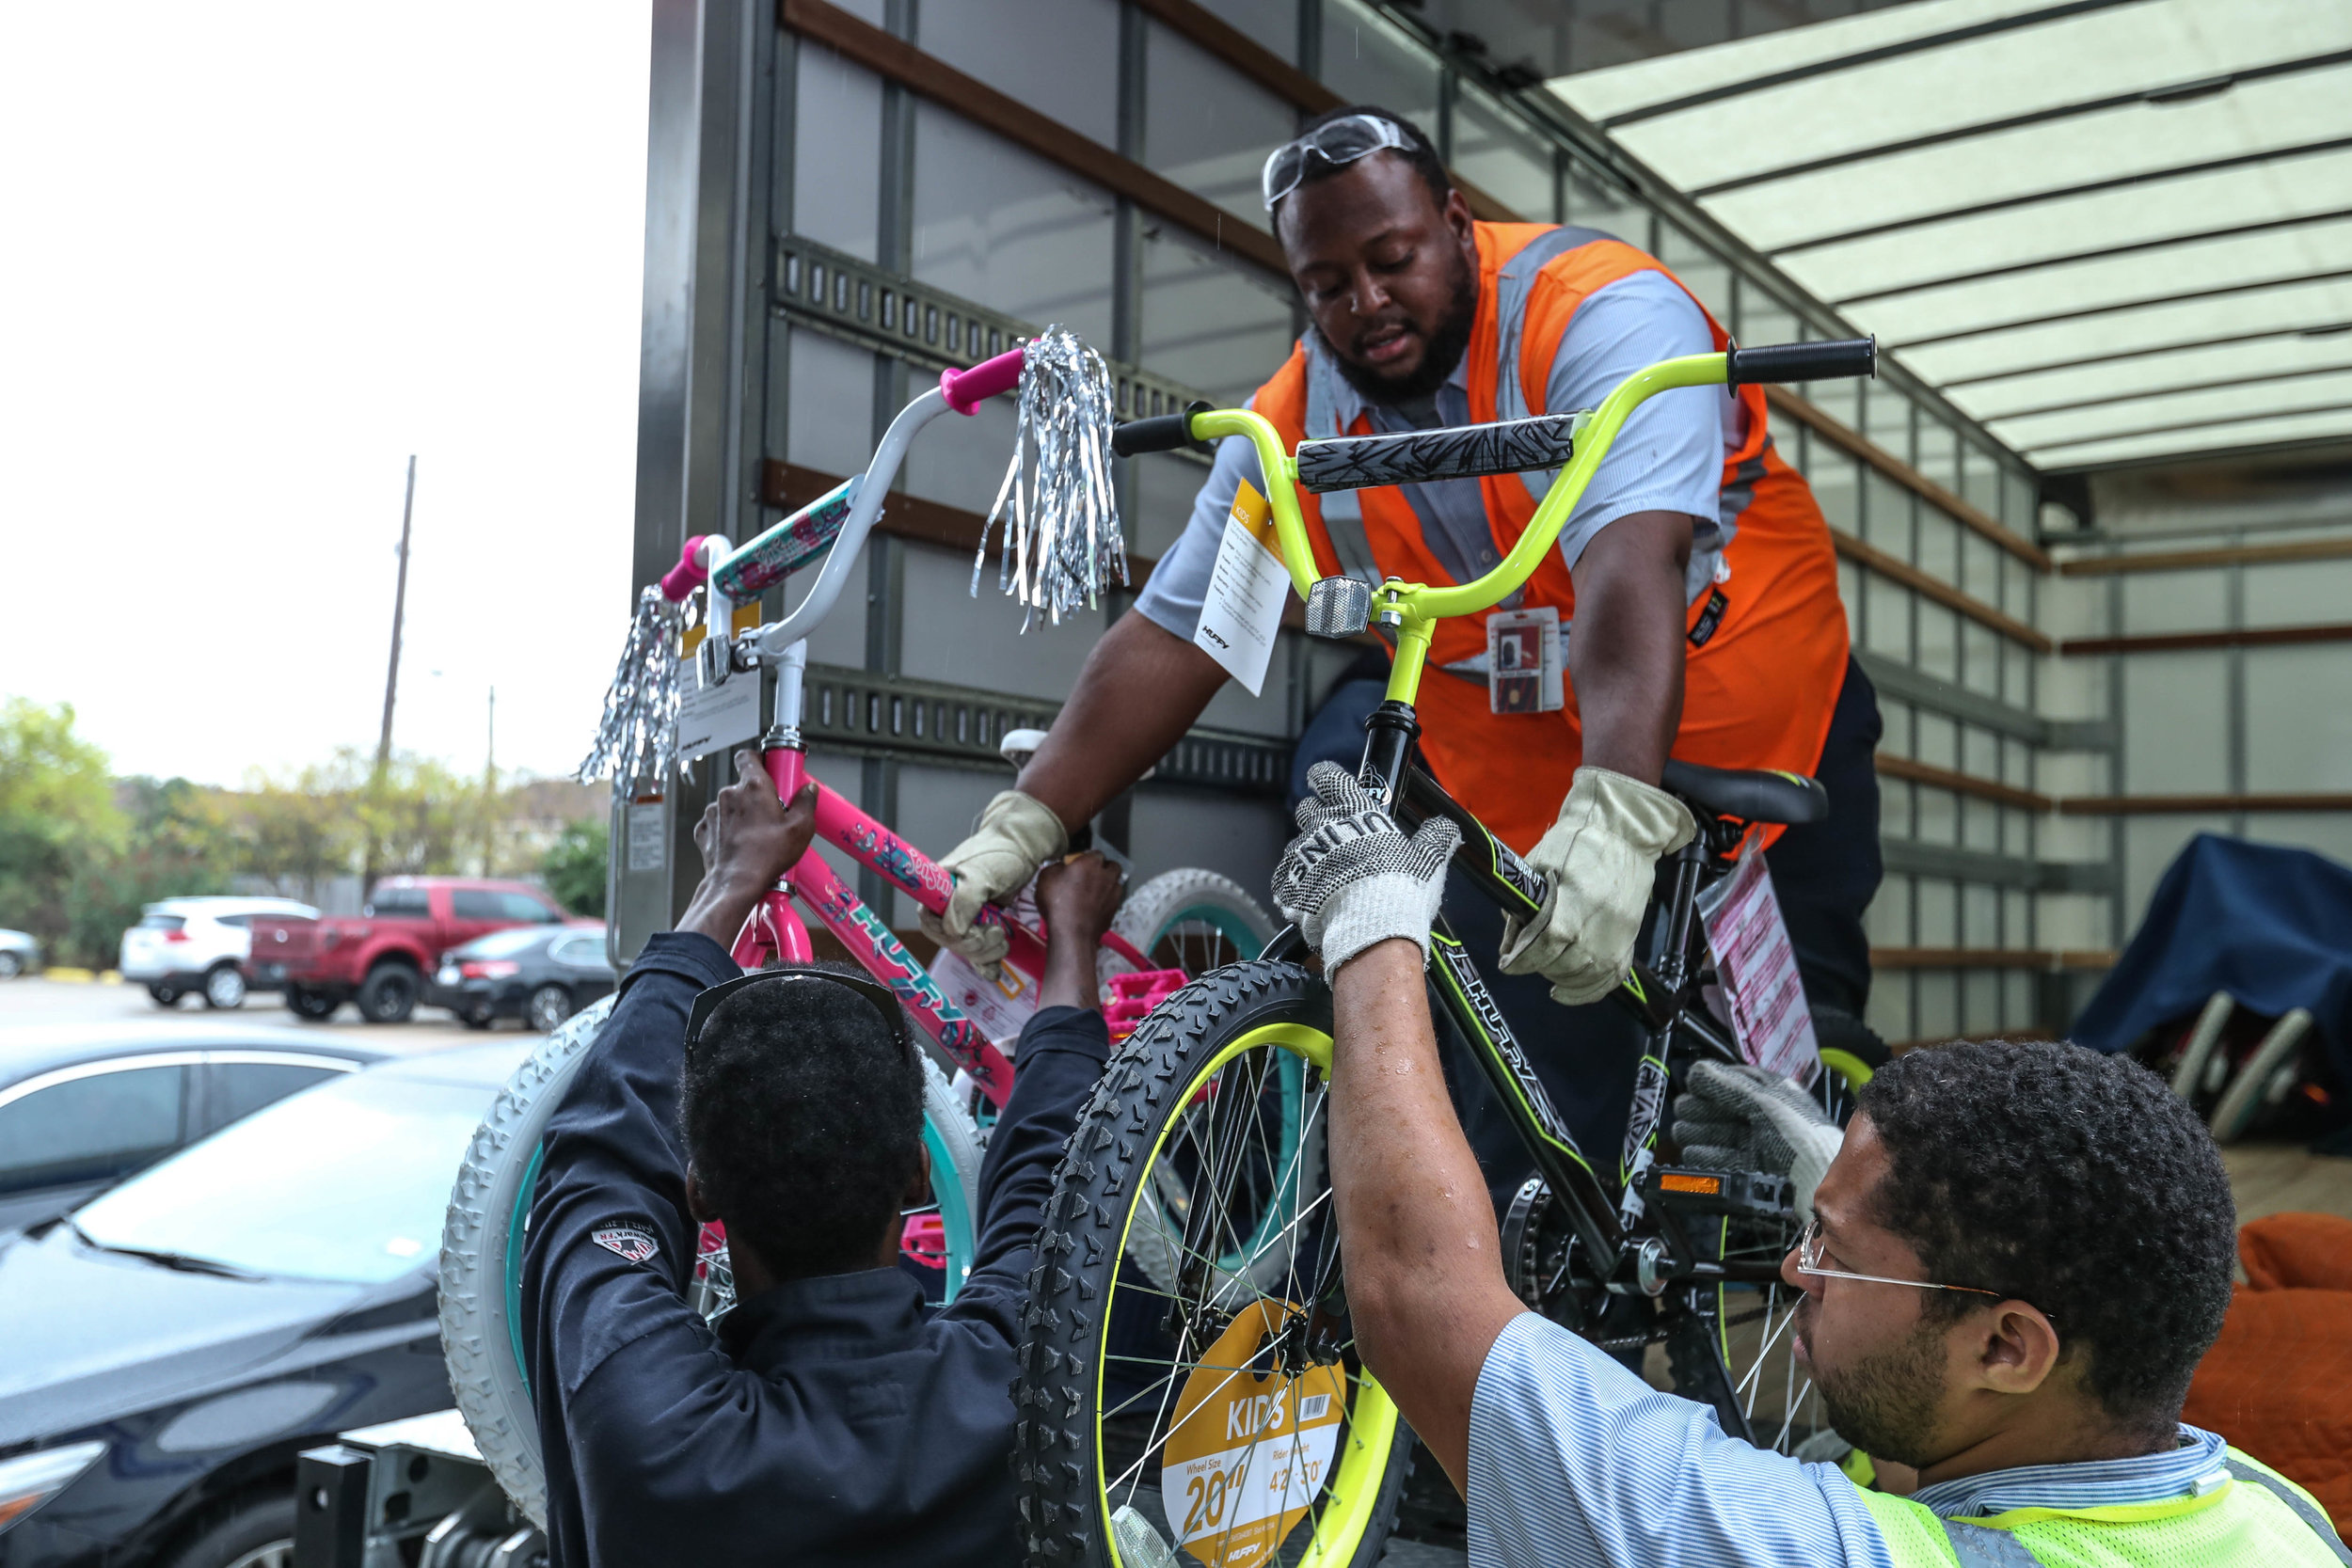 Shell unloading bicycles 2017.jpg